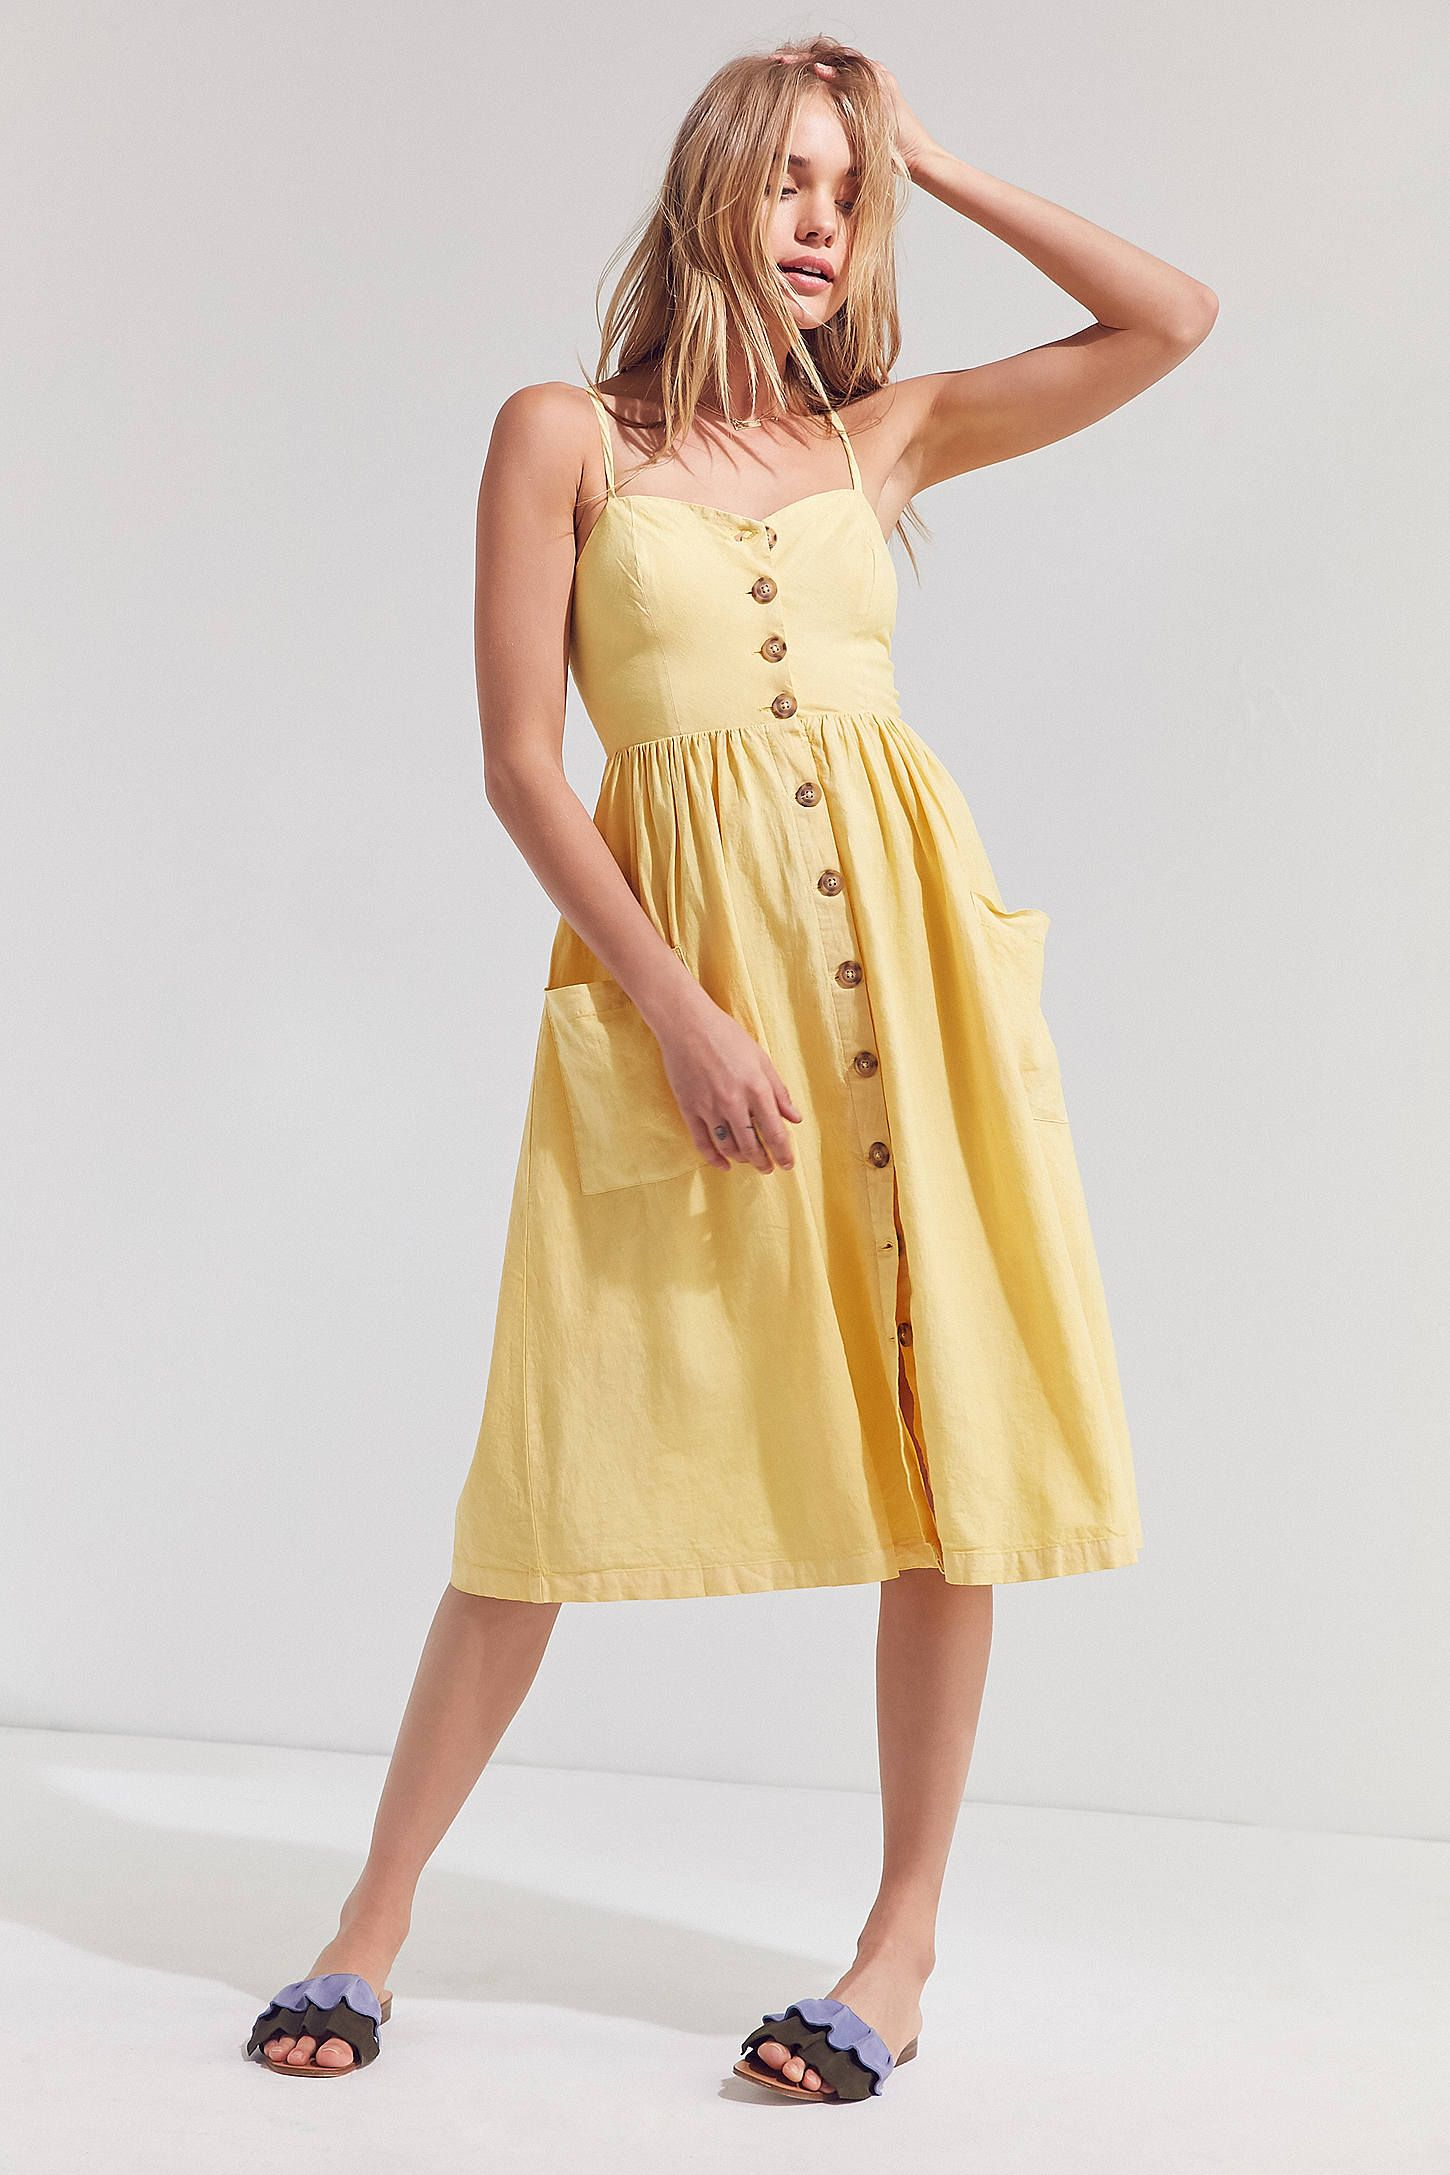 ed1fd2e4b8 Shop the Cooperative Emilia Linen Button-Down Midi Dress and more Urban  Outfitters at Urban Outfitters. Read customer reviews, discover product  details and ...